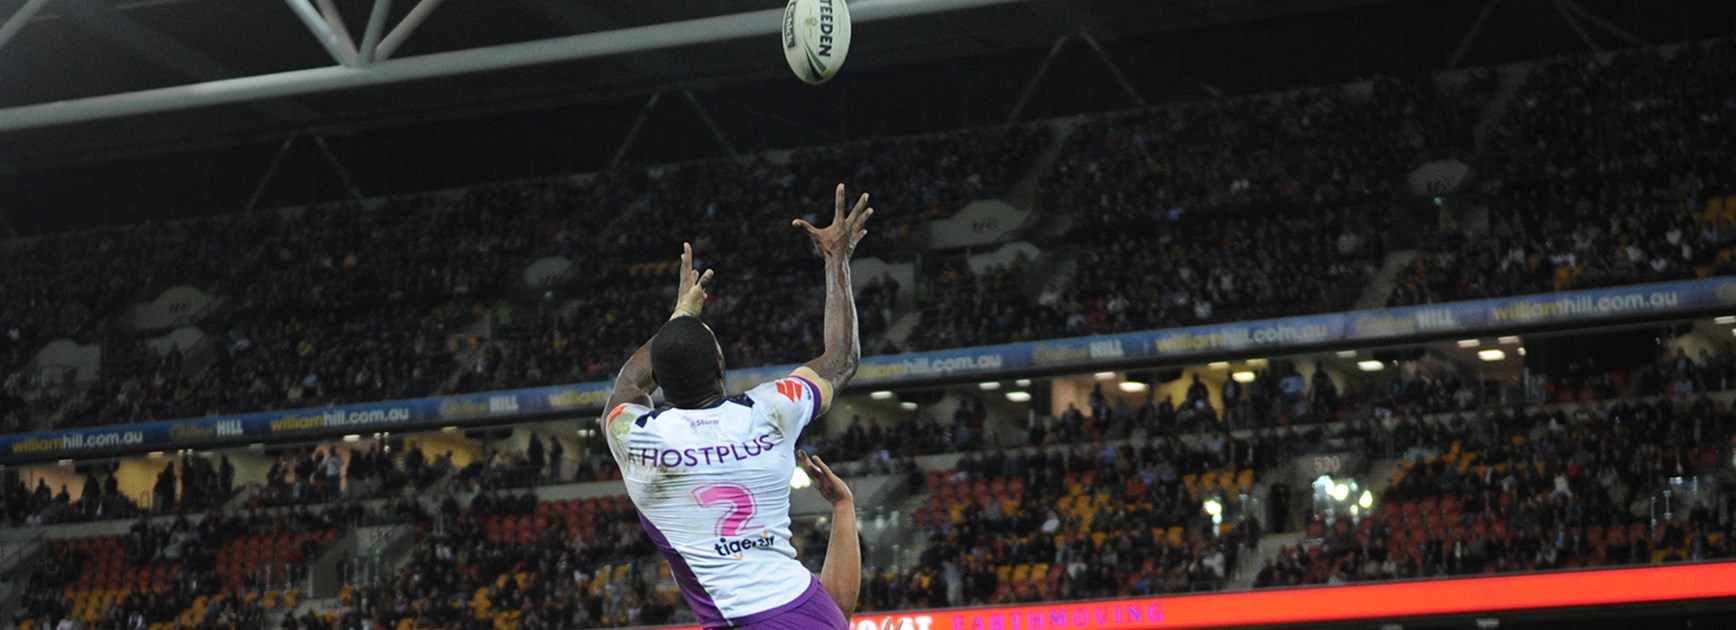 Suliasi Vunivalu soars above the Broncos to score a hat-trick at Suncorp Stadium.